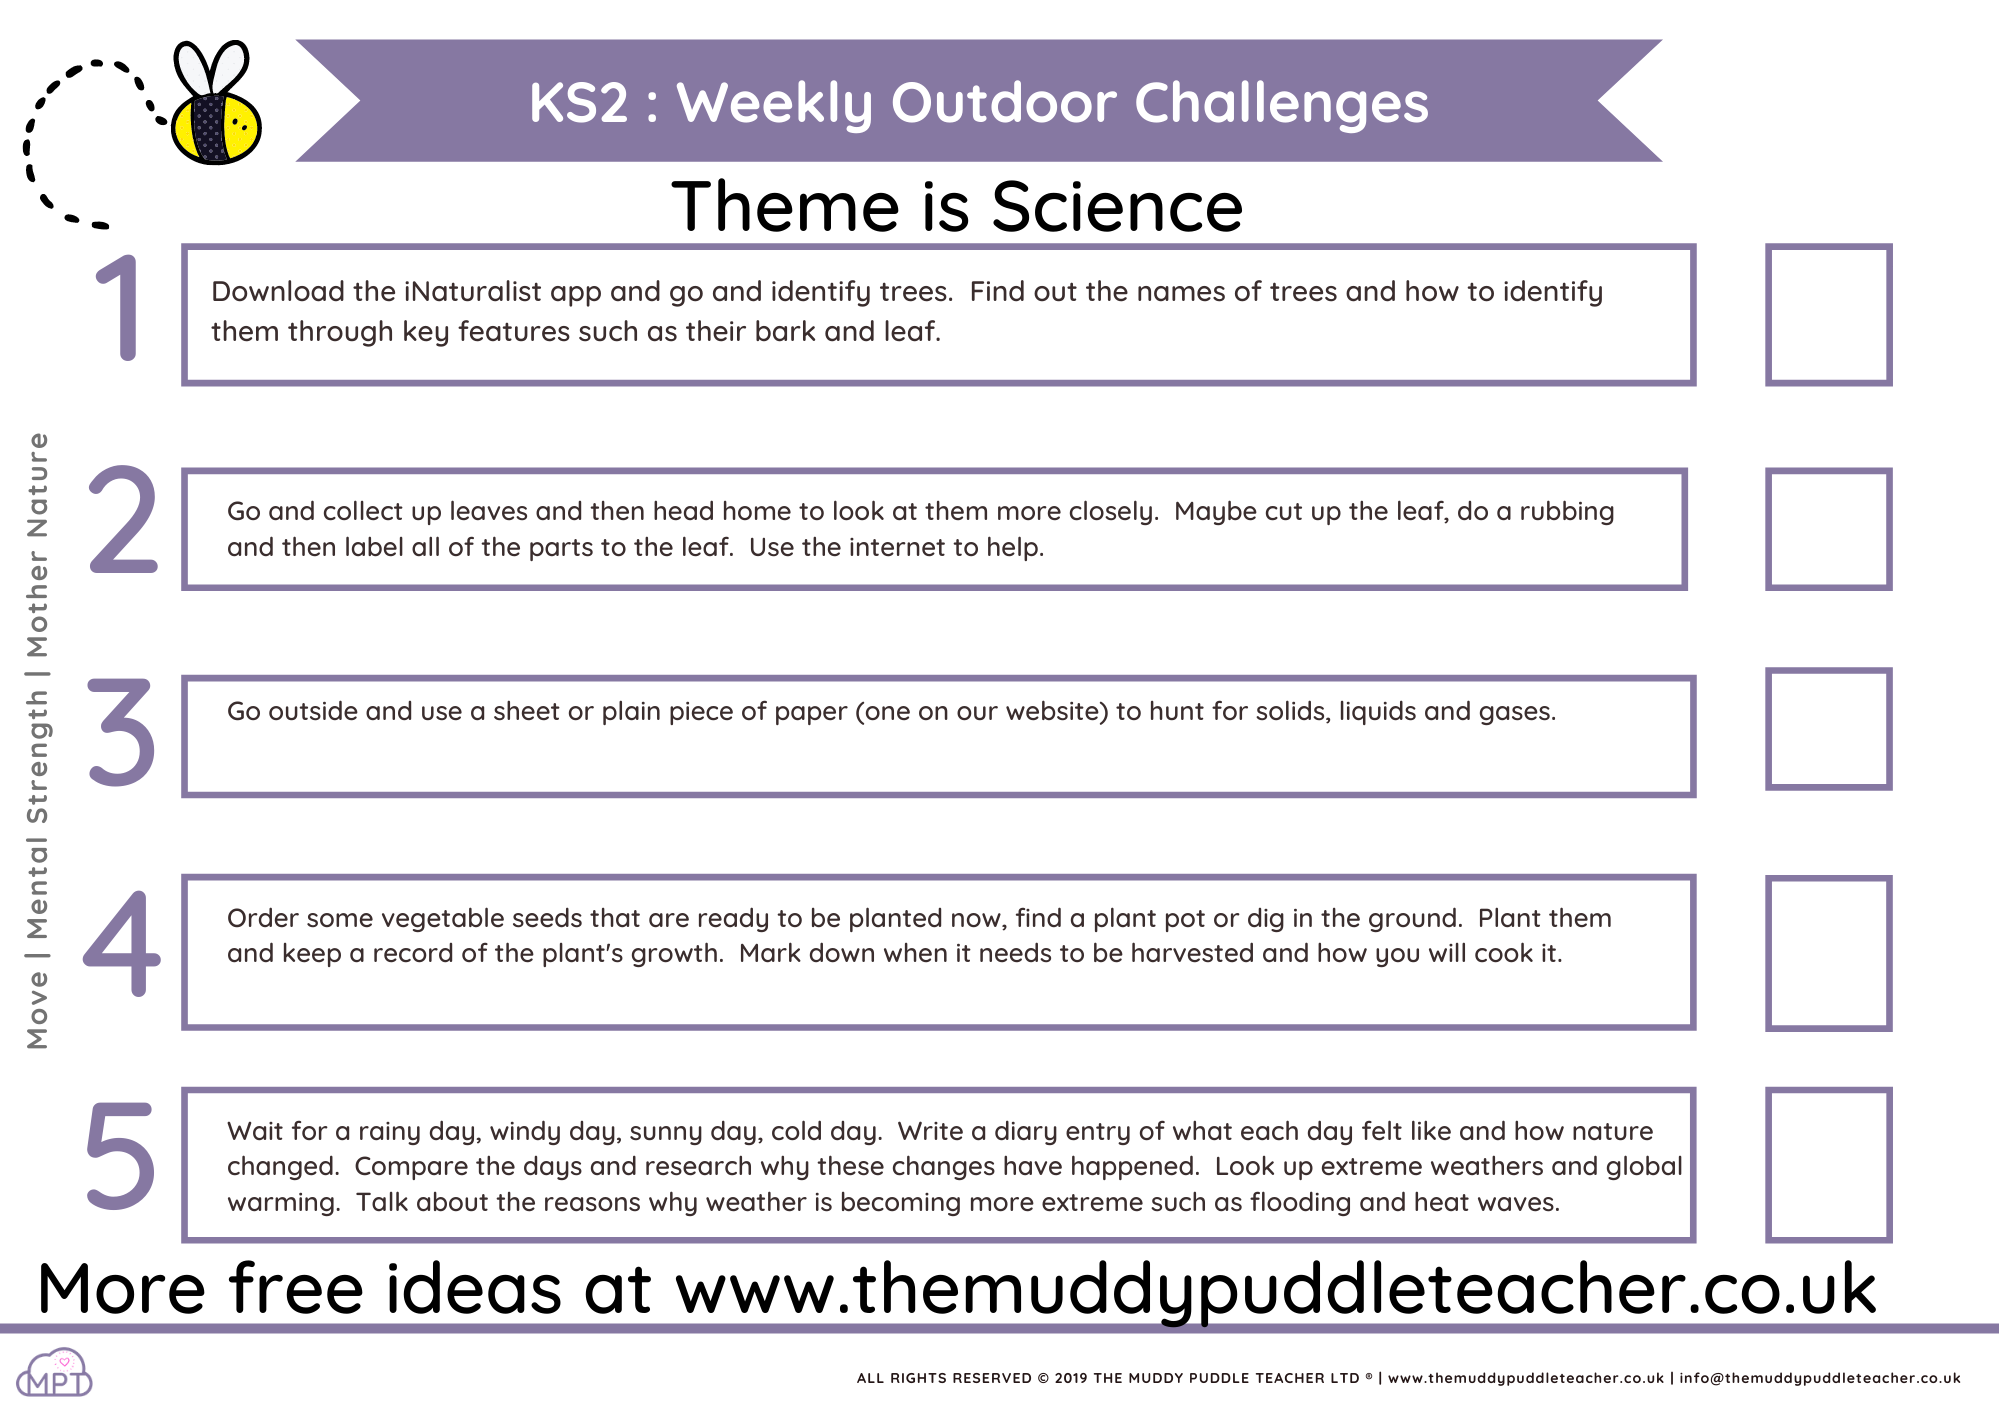 KS2 Weekly Outdoor Learning Challenges (Science Theme)